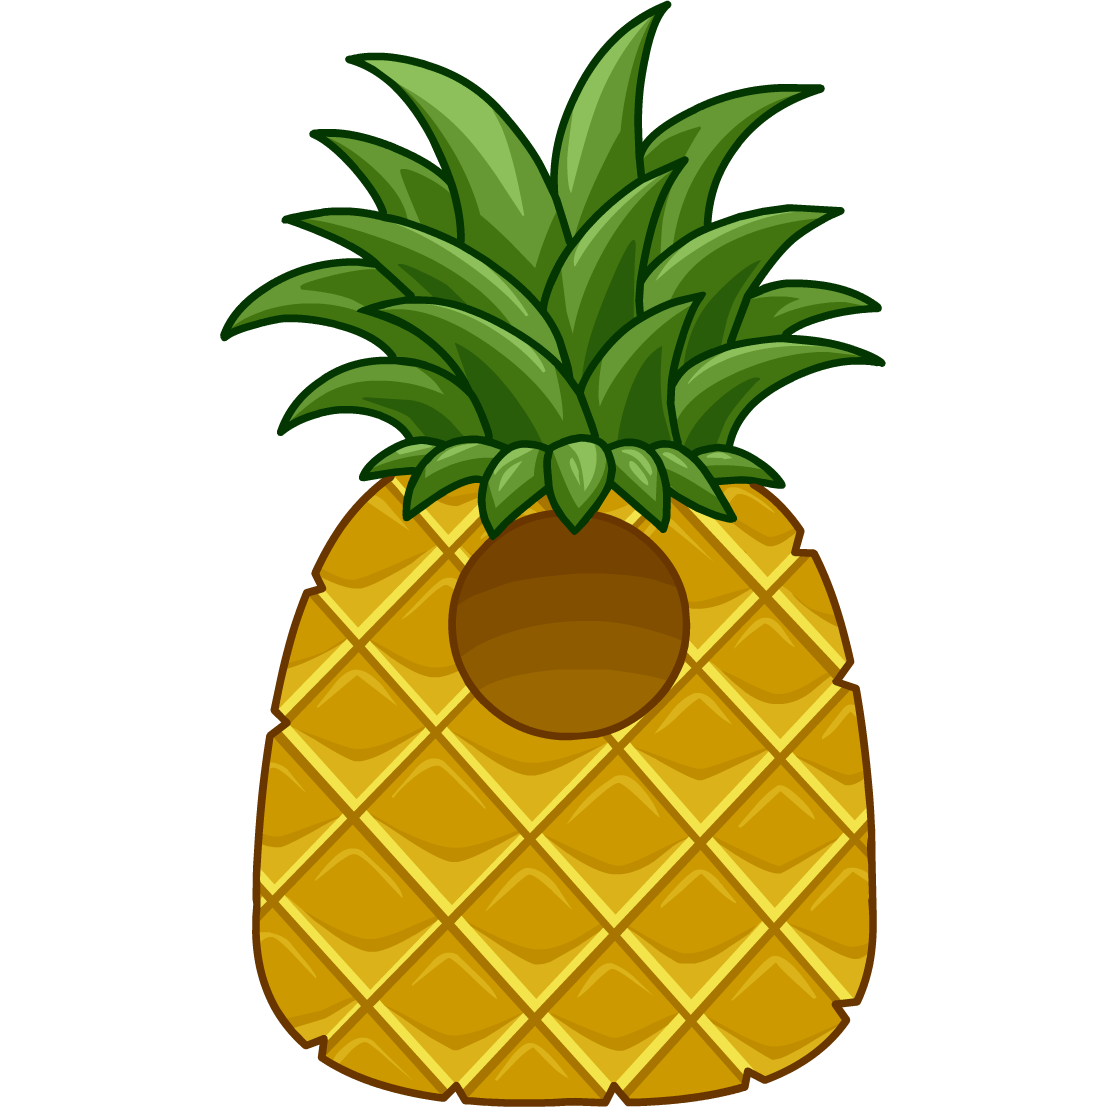 Costume club penguin wiki. Pineapple clipart character